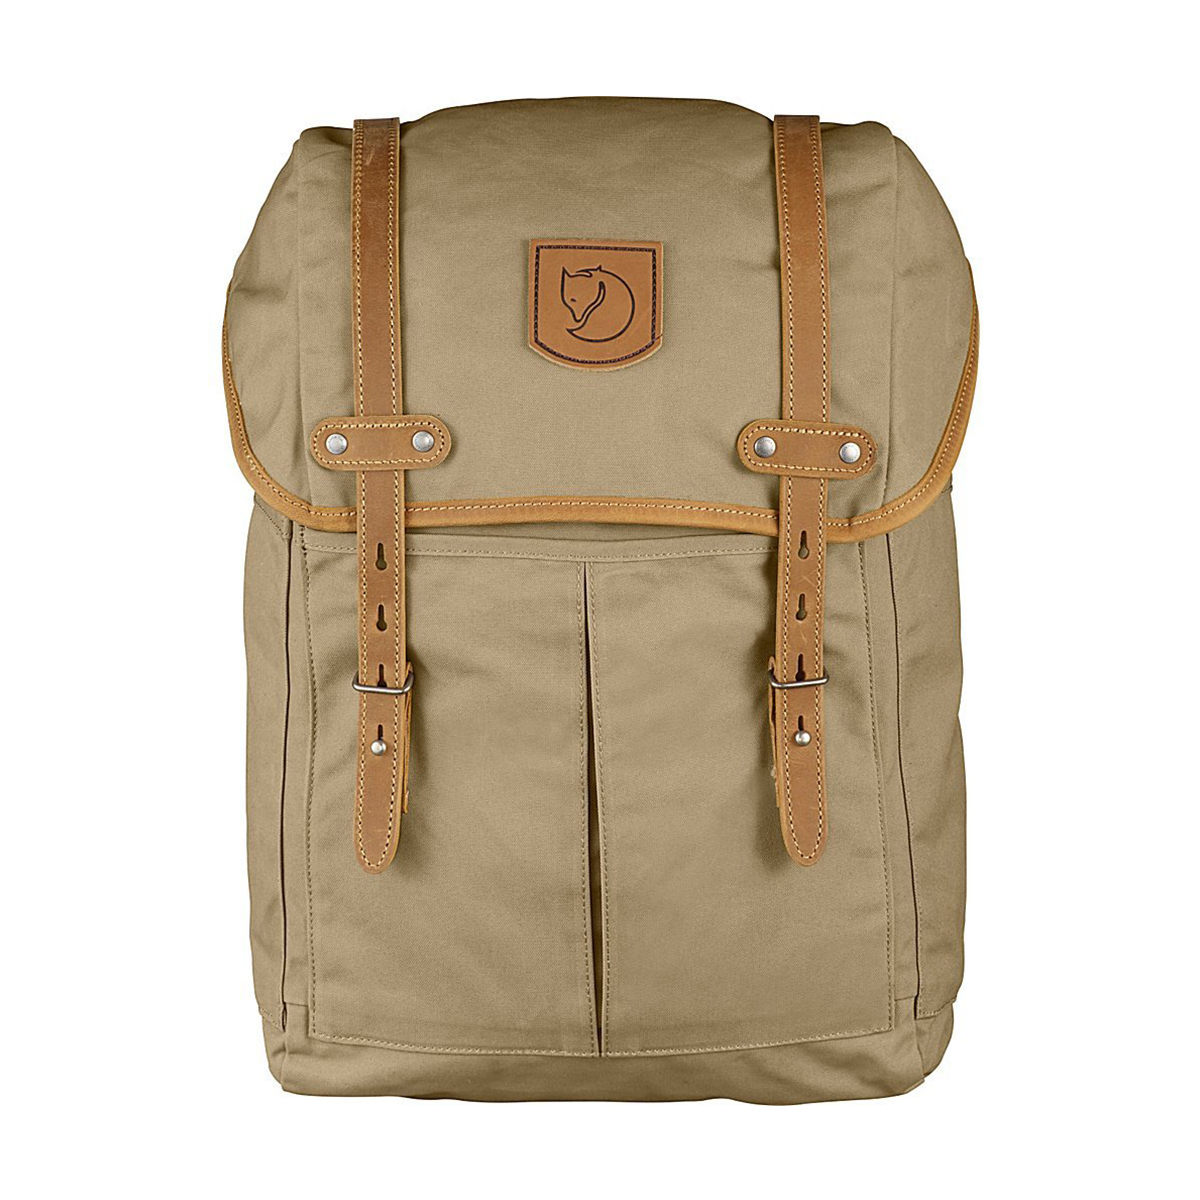 Pioneer Padded Canvas Bag for Jaffle Iron Single